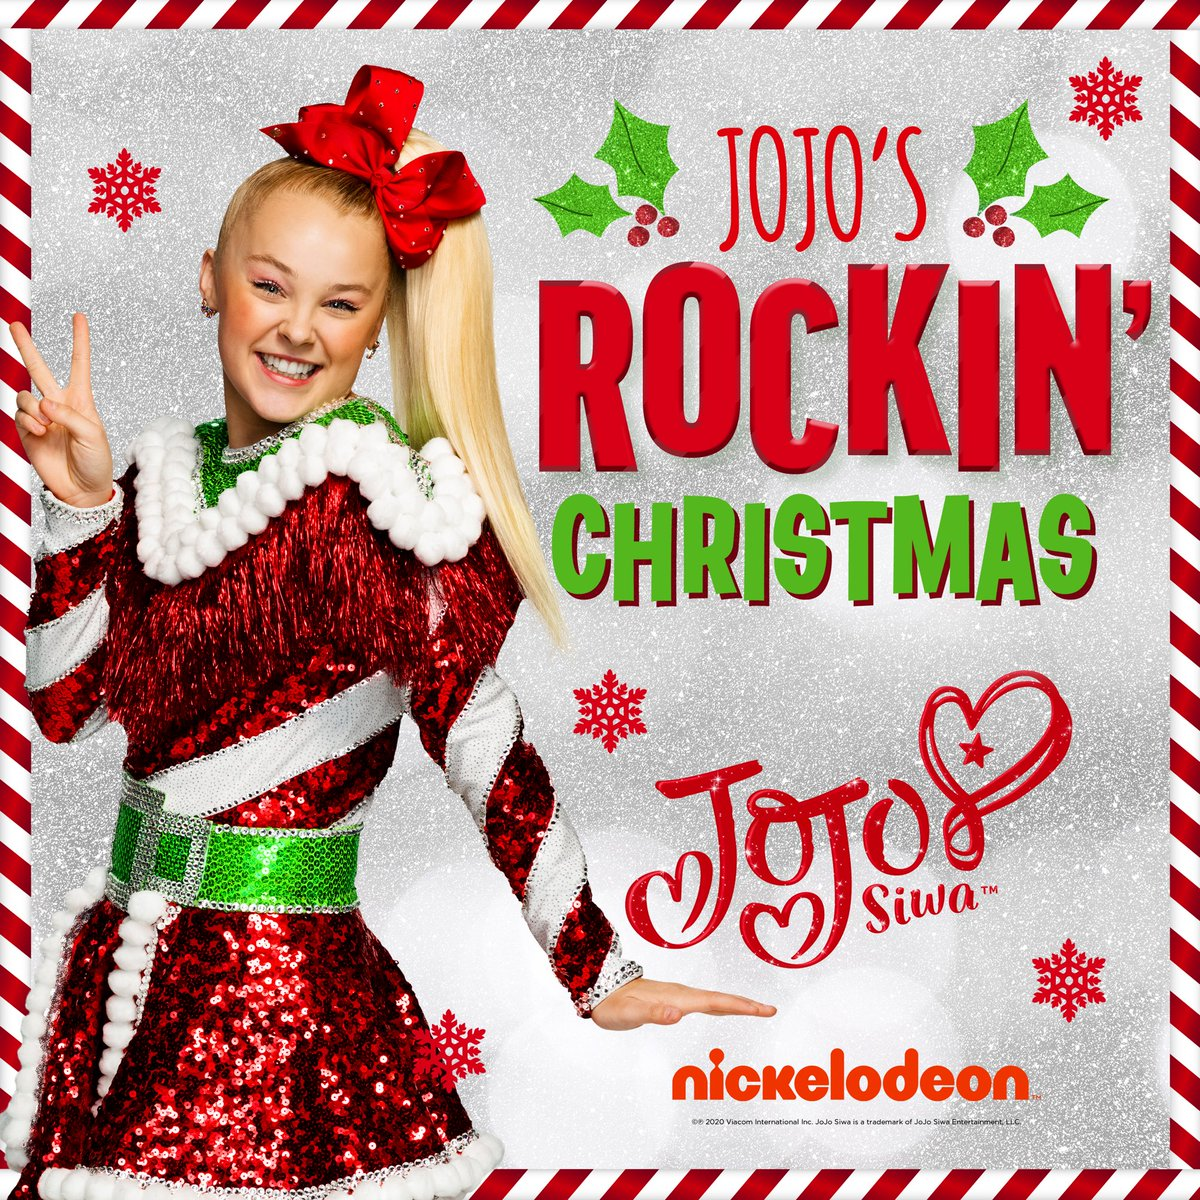 .@itsjojosiwa has released her new Christmas EP! Give it a listen to get you in the holiday spirit!  We look forward to seeing JoJo at Toyota Center in 2021.  Listen: